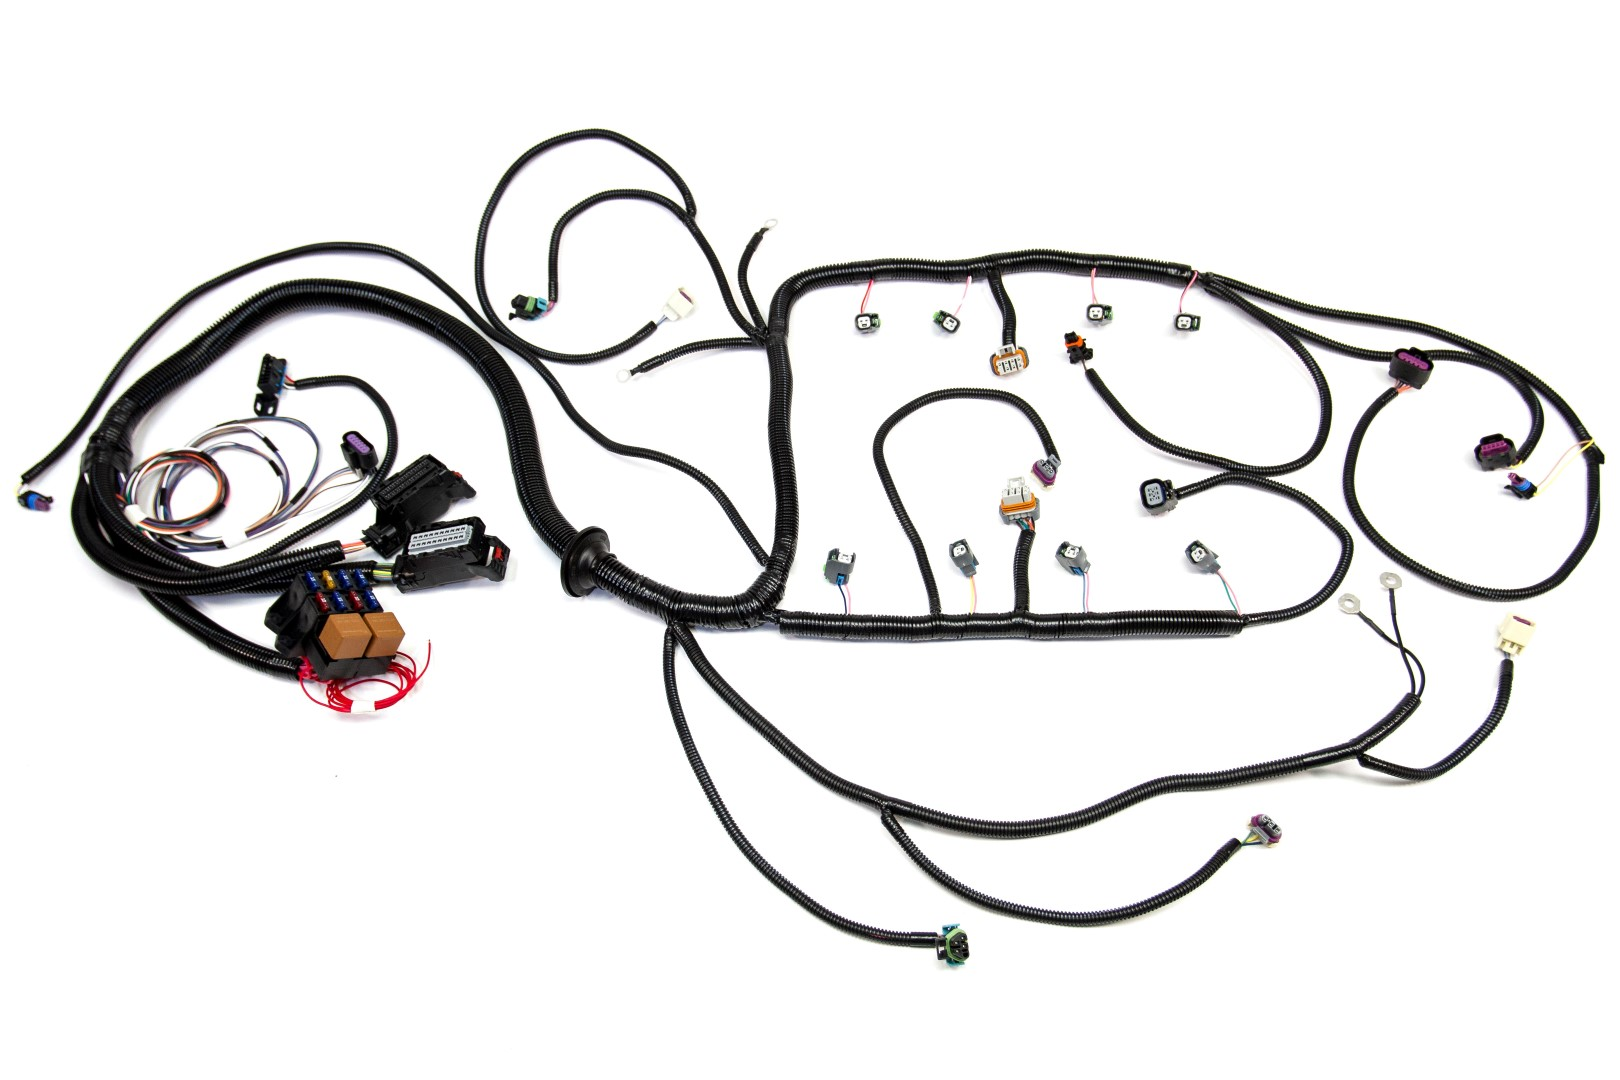 hight resolution of  08 13 ls3 6 2l standalone wiring harness w t56 tr6060